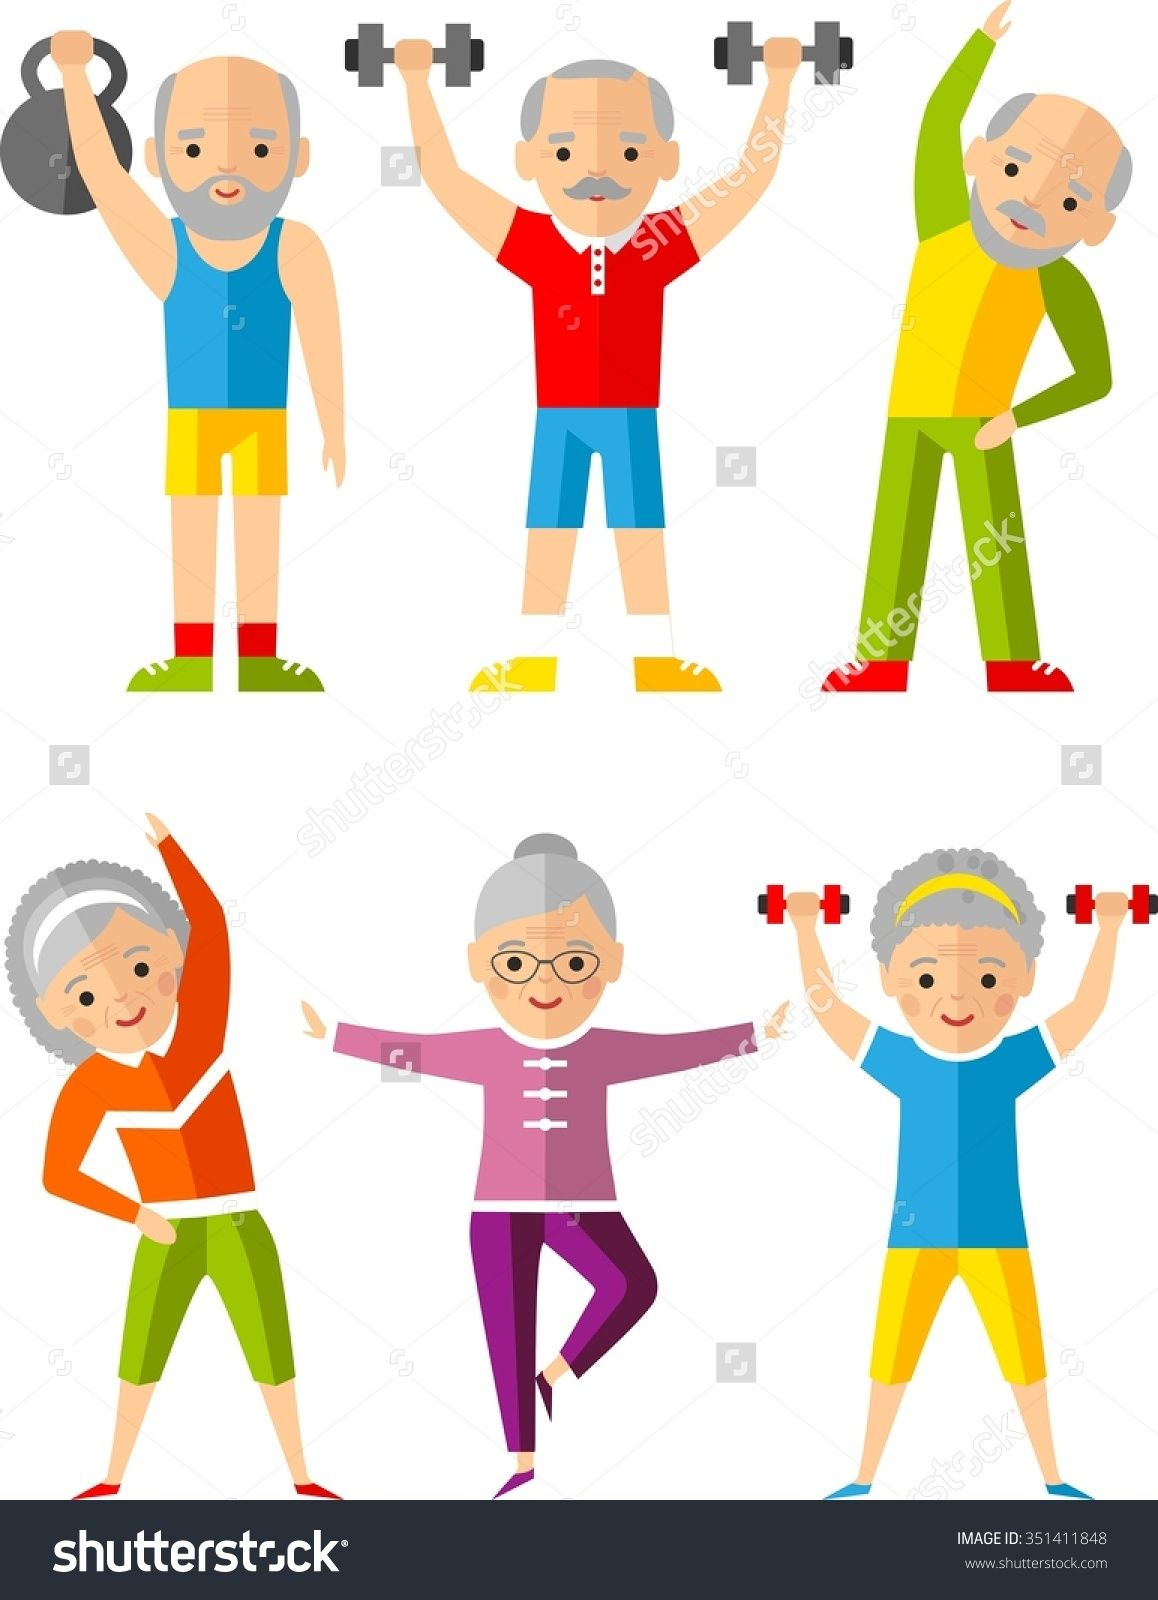 Exercise clipart pictures free clip art library library Image result for free clipart senior exercise | Health | Senior ... clip art library library